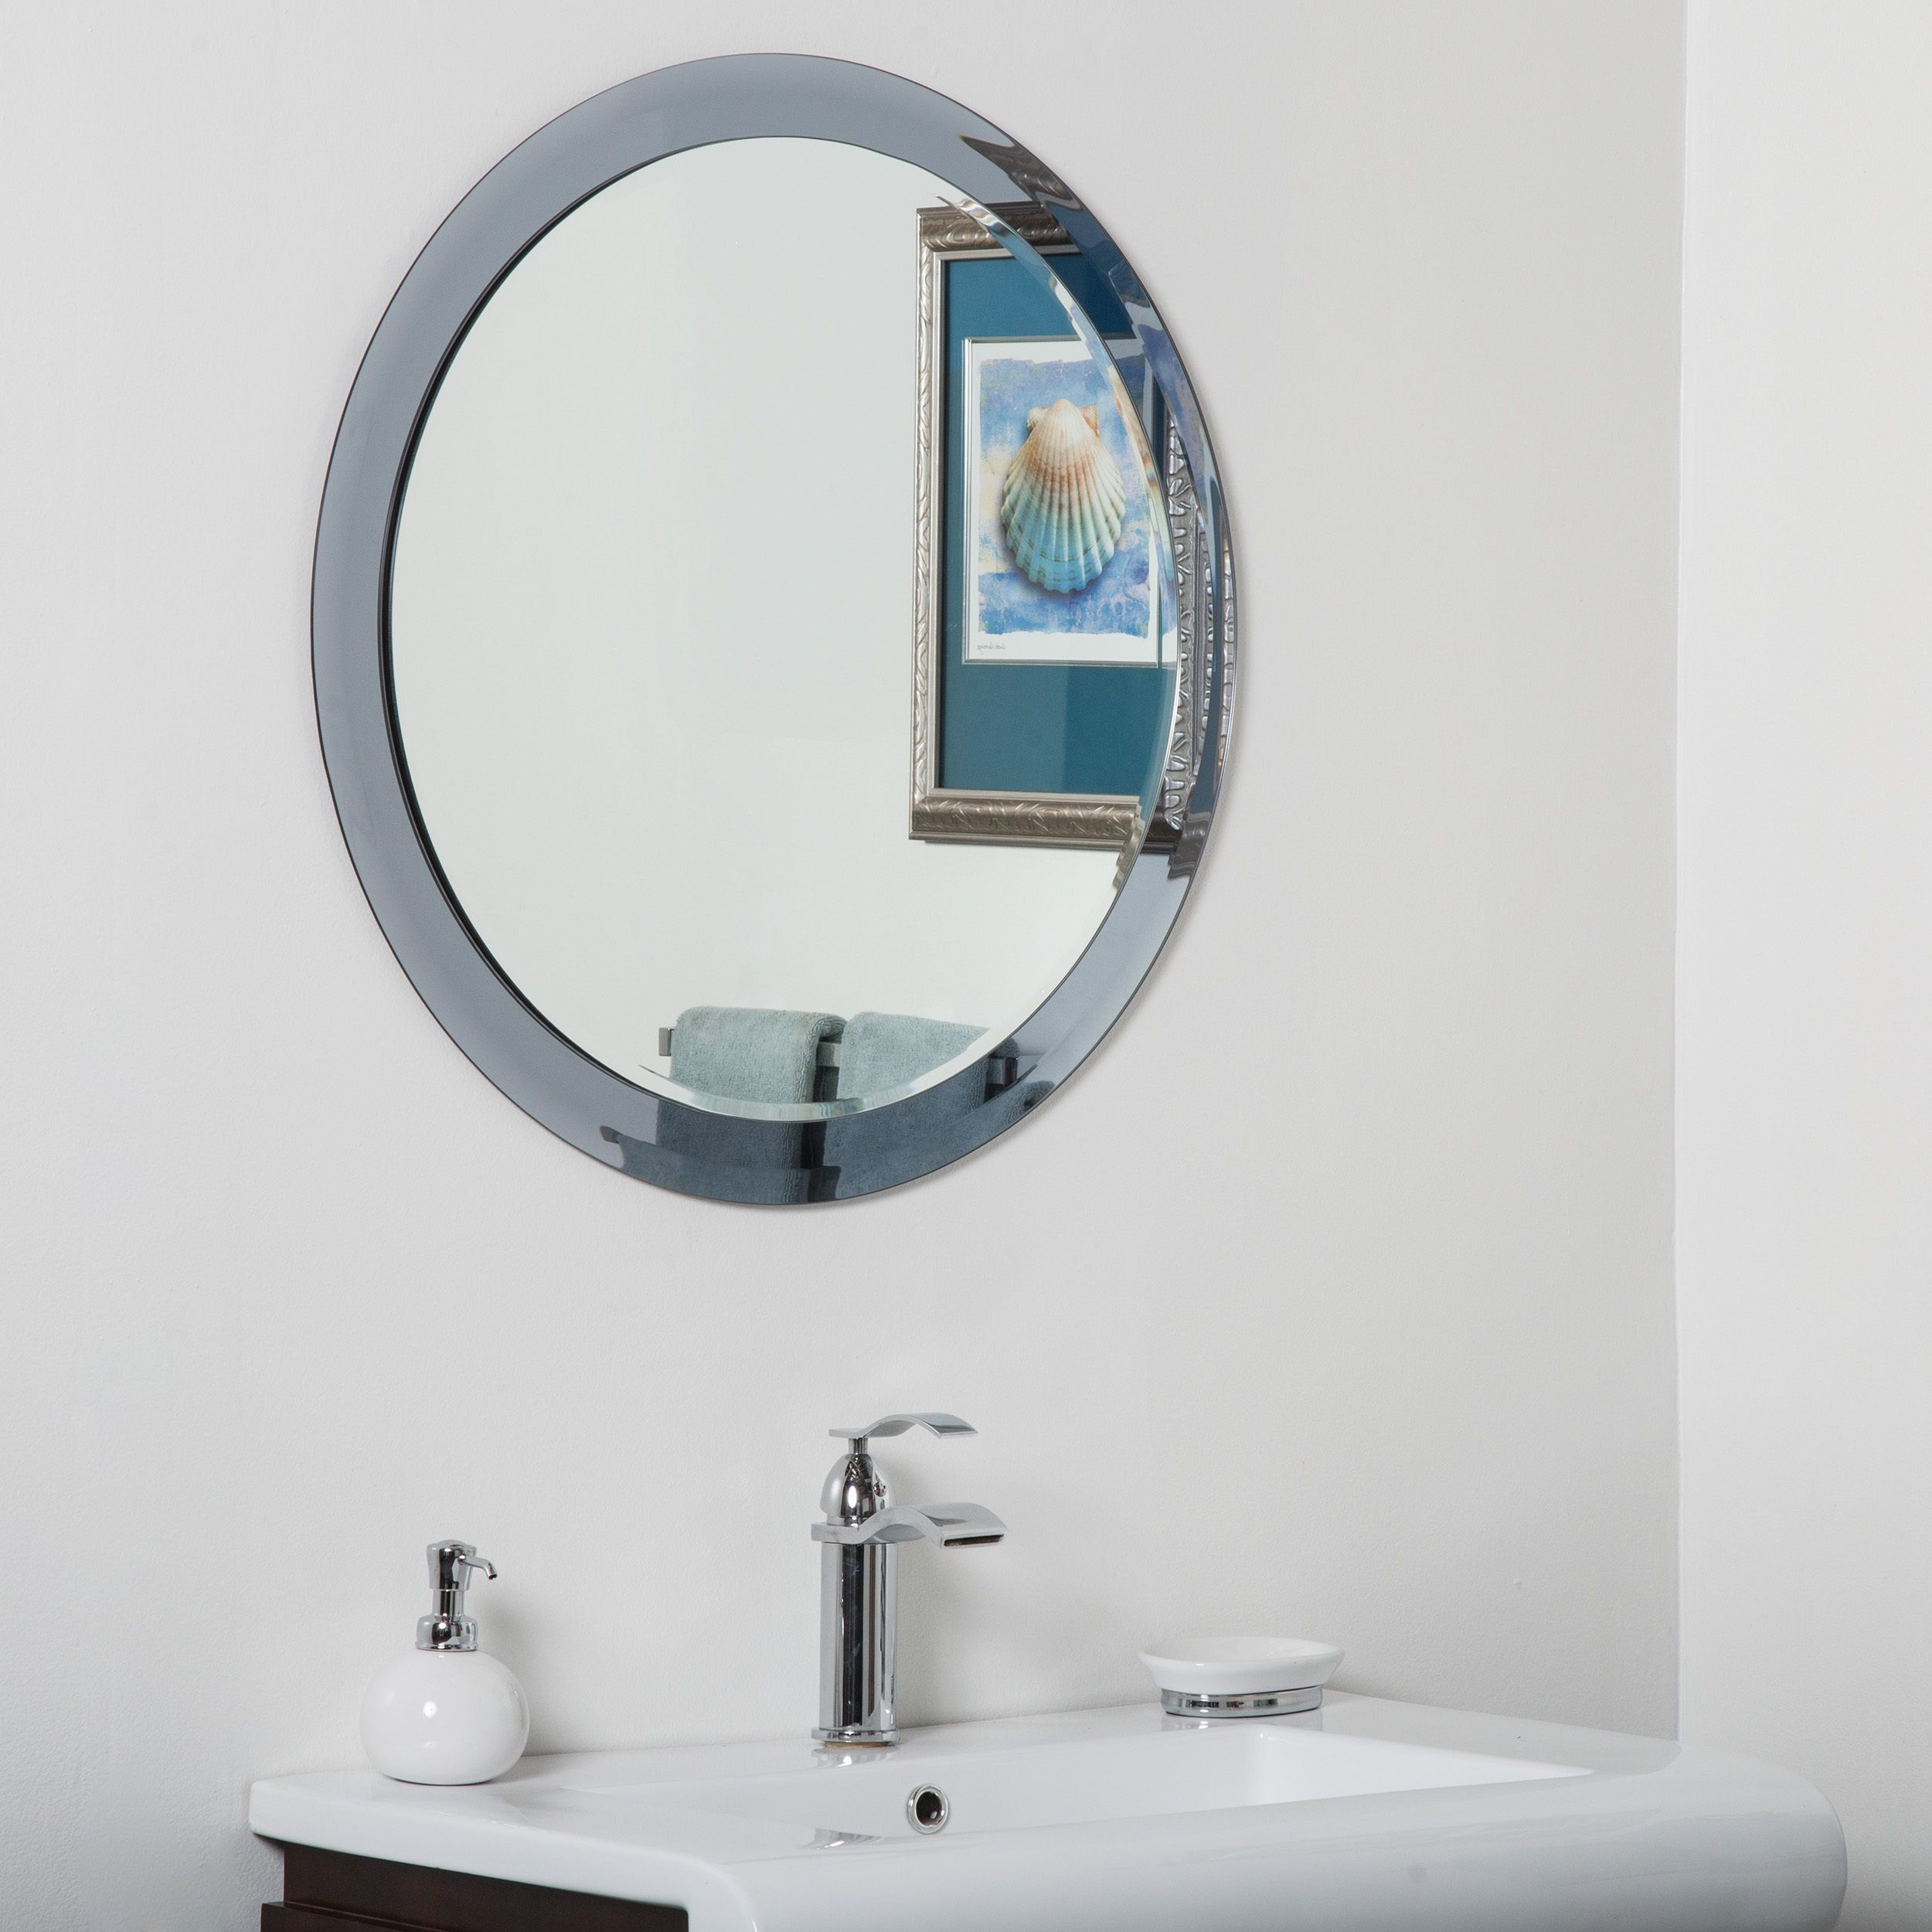 Online Shopping Bedding Furniture Electronics Jewelry Clothing More Modern Bathroom Mirrors Contemporary Bathroom Mirrors Modern Bathroom